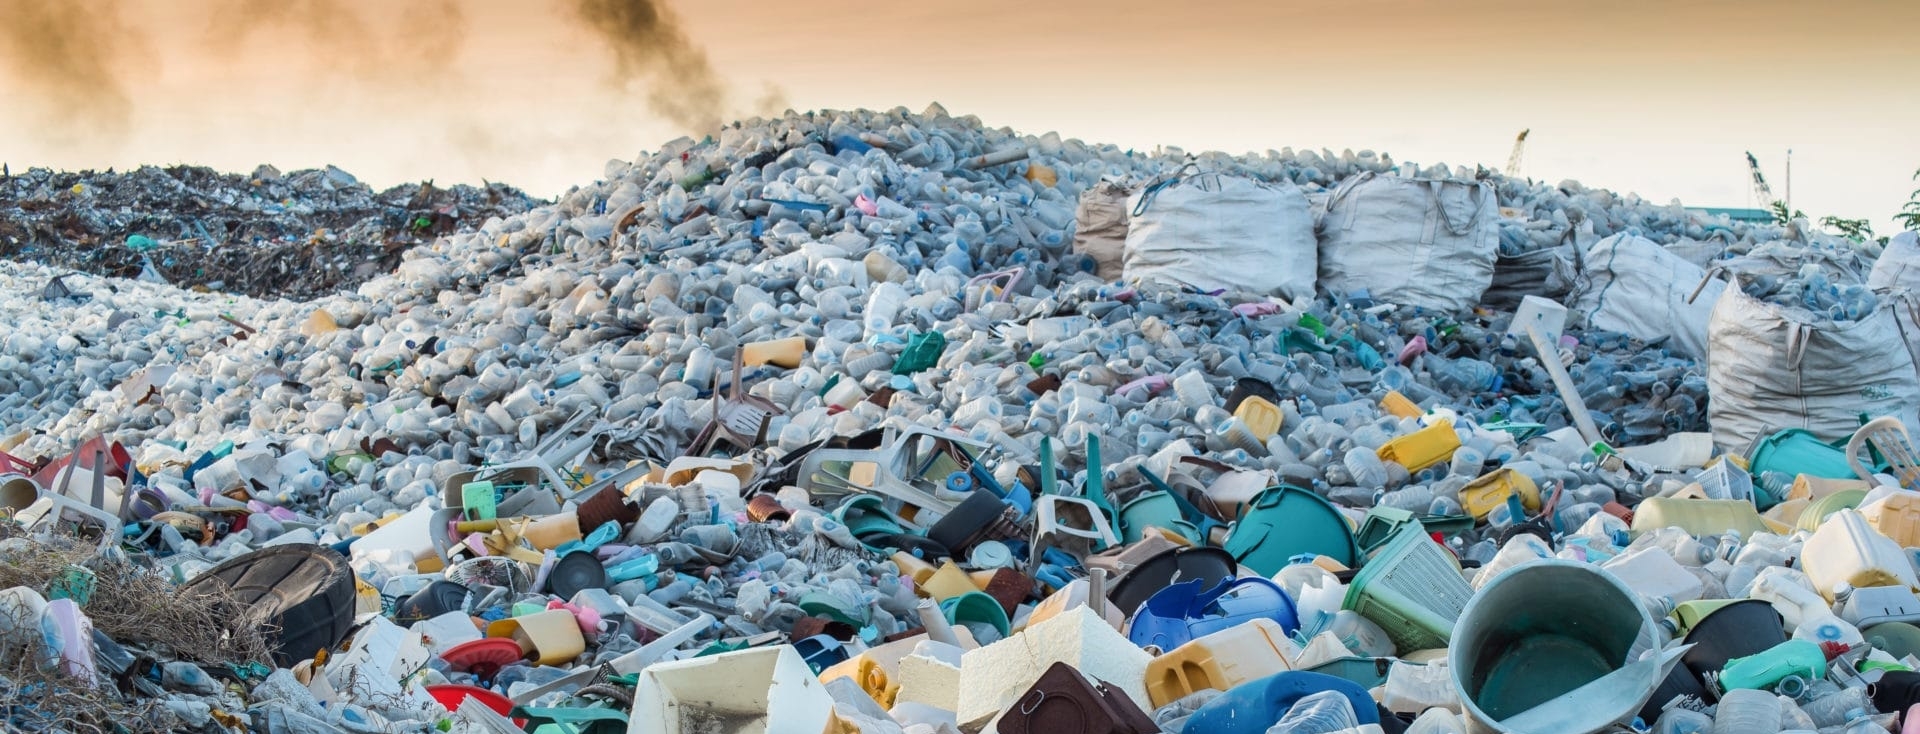 Home - Plastic Recycling Amsterdam | Lead in engineering